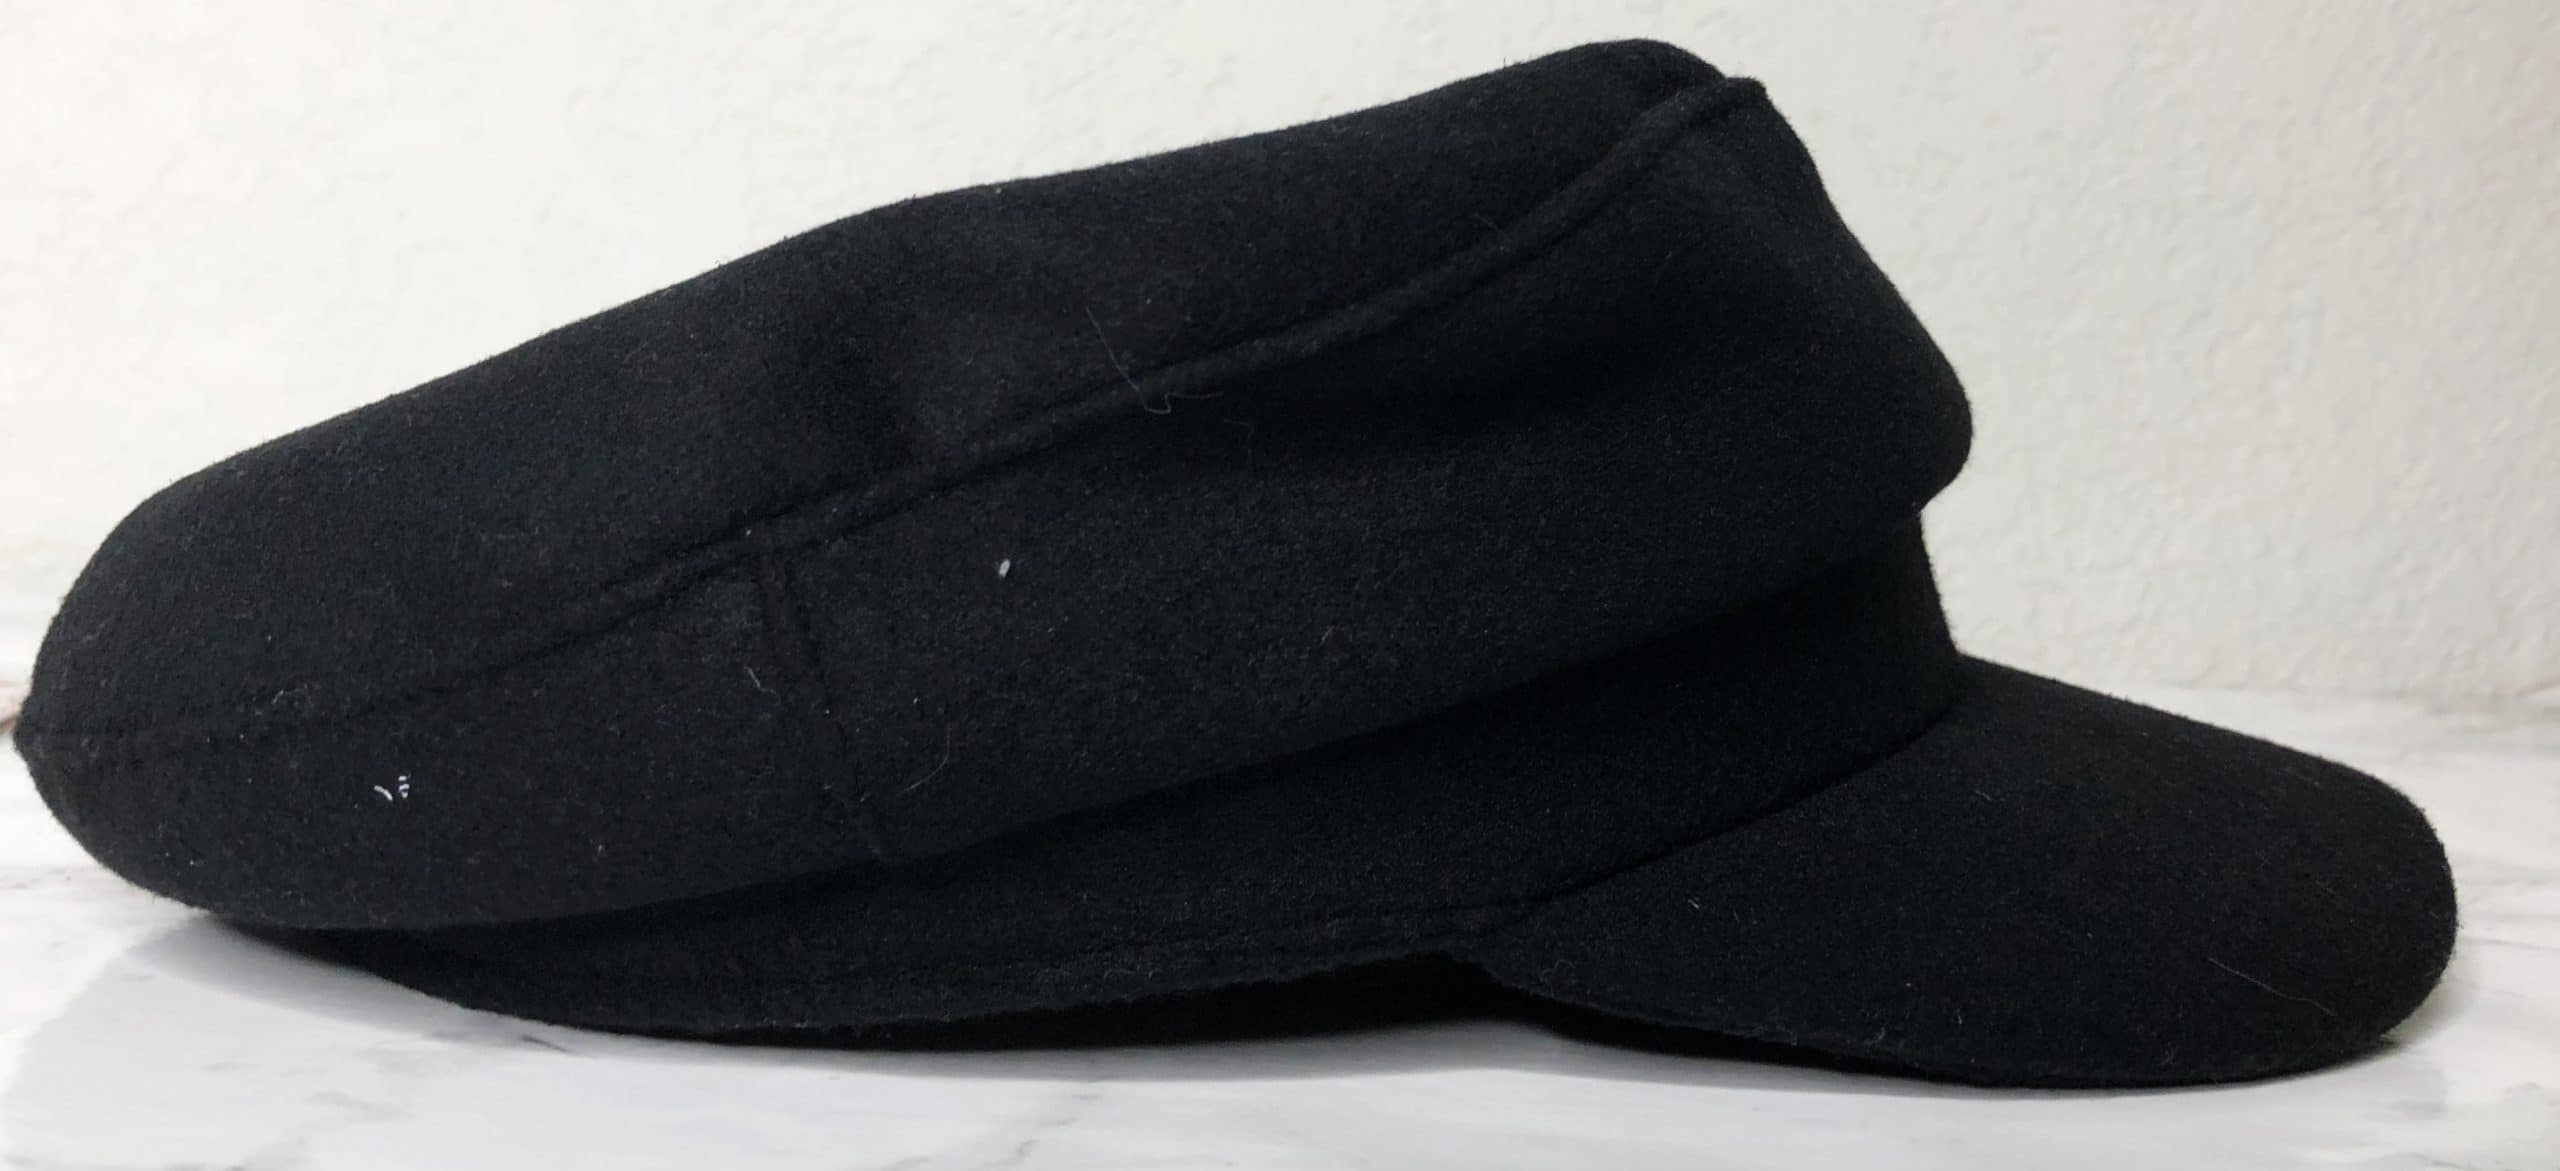 JustFab Reviews - Cabby Hat